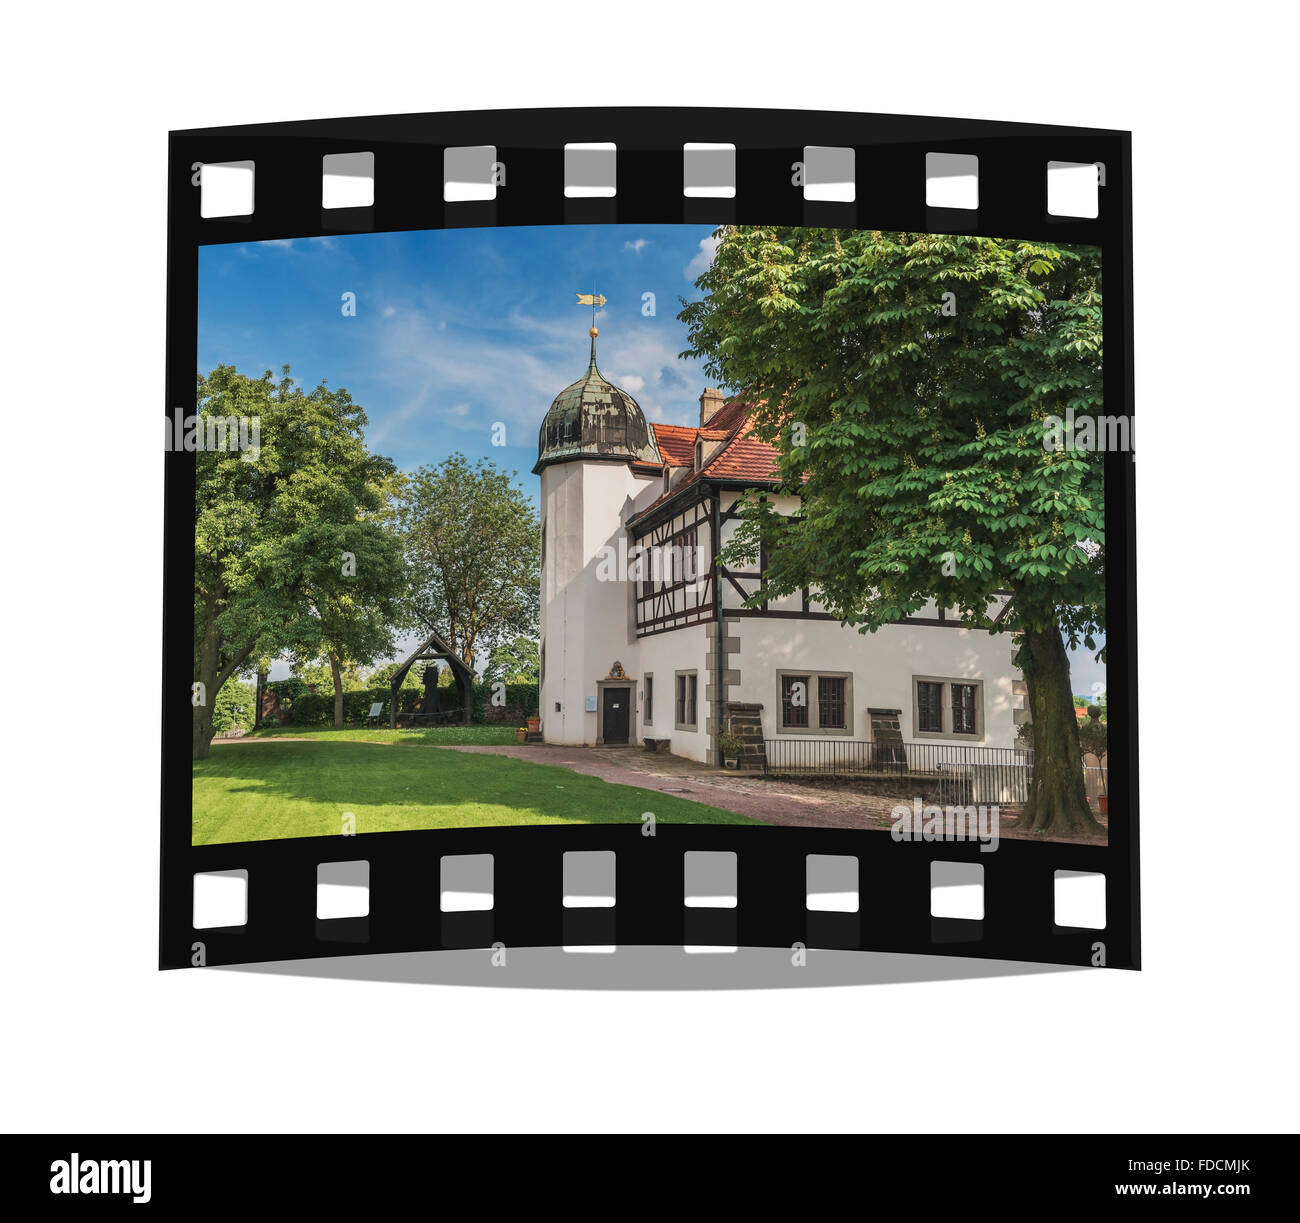 Summer residence Castle Hofloessnitz is a building in the wine-growing area in Radebeul near Dresden, Saxony, Germany, - Stock Image